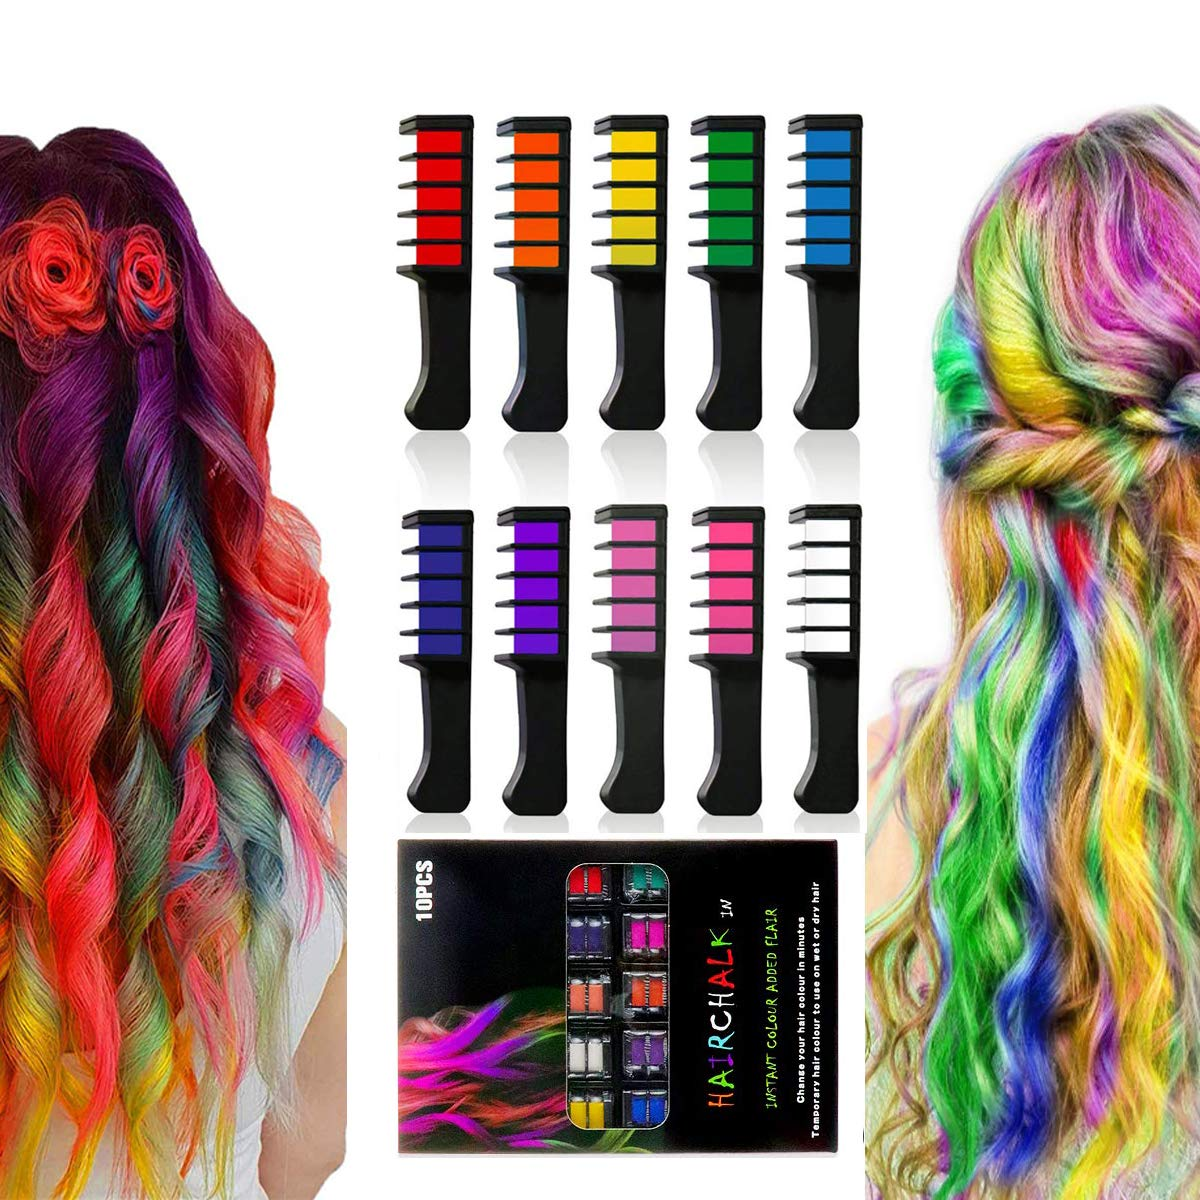 San Francisco Mall Hair Manufacturer regenerated product Chalk Halloween Birthday Christmas and DIY Cosplay Col 10